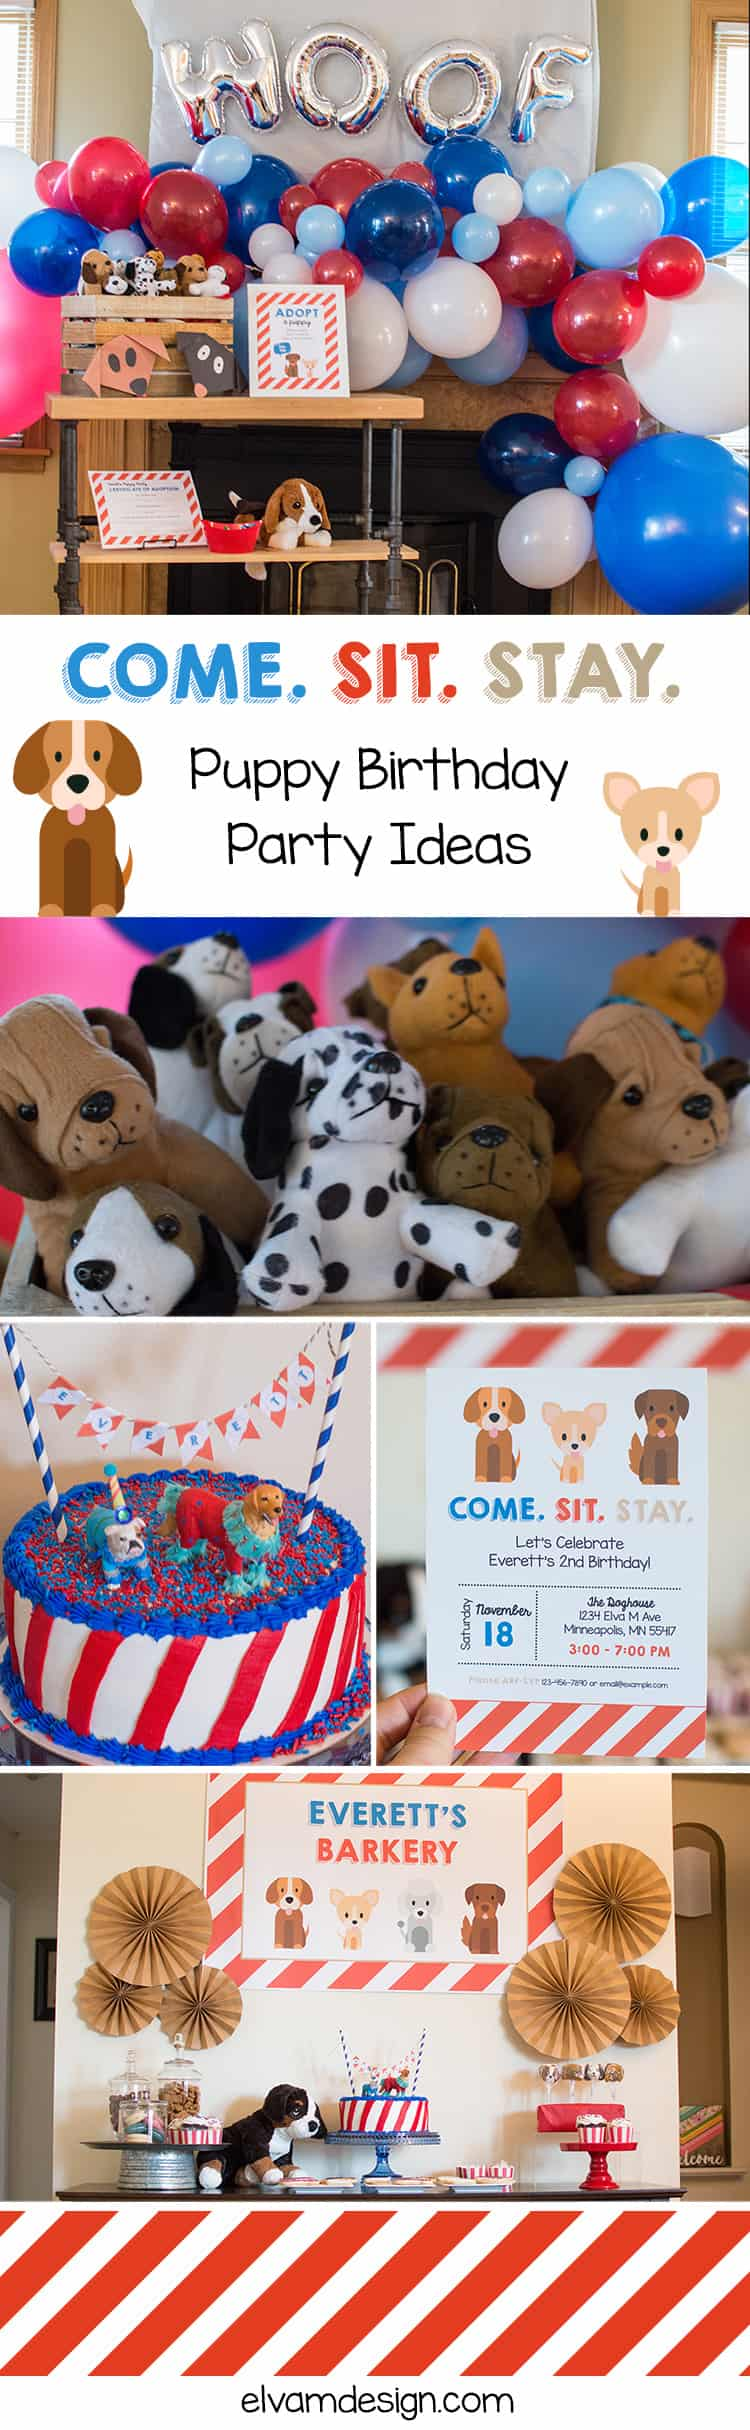 Come. Sit. Stay. It's time to Pawty. Head over to Elva M Design Studio to check out these Puppy Party Ideas.